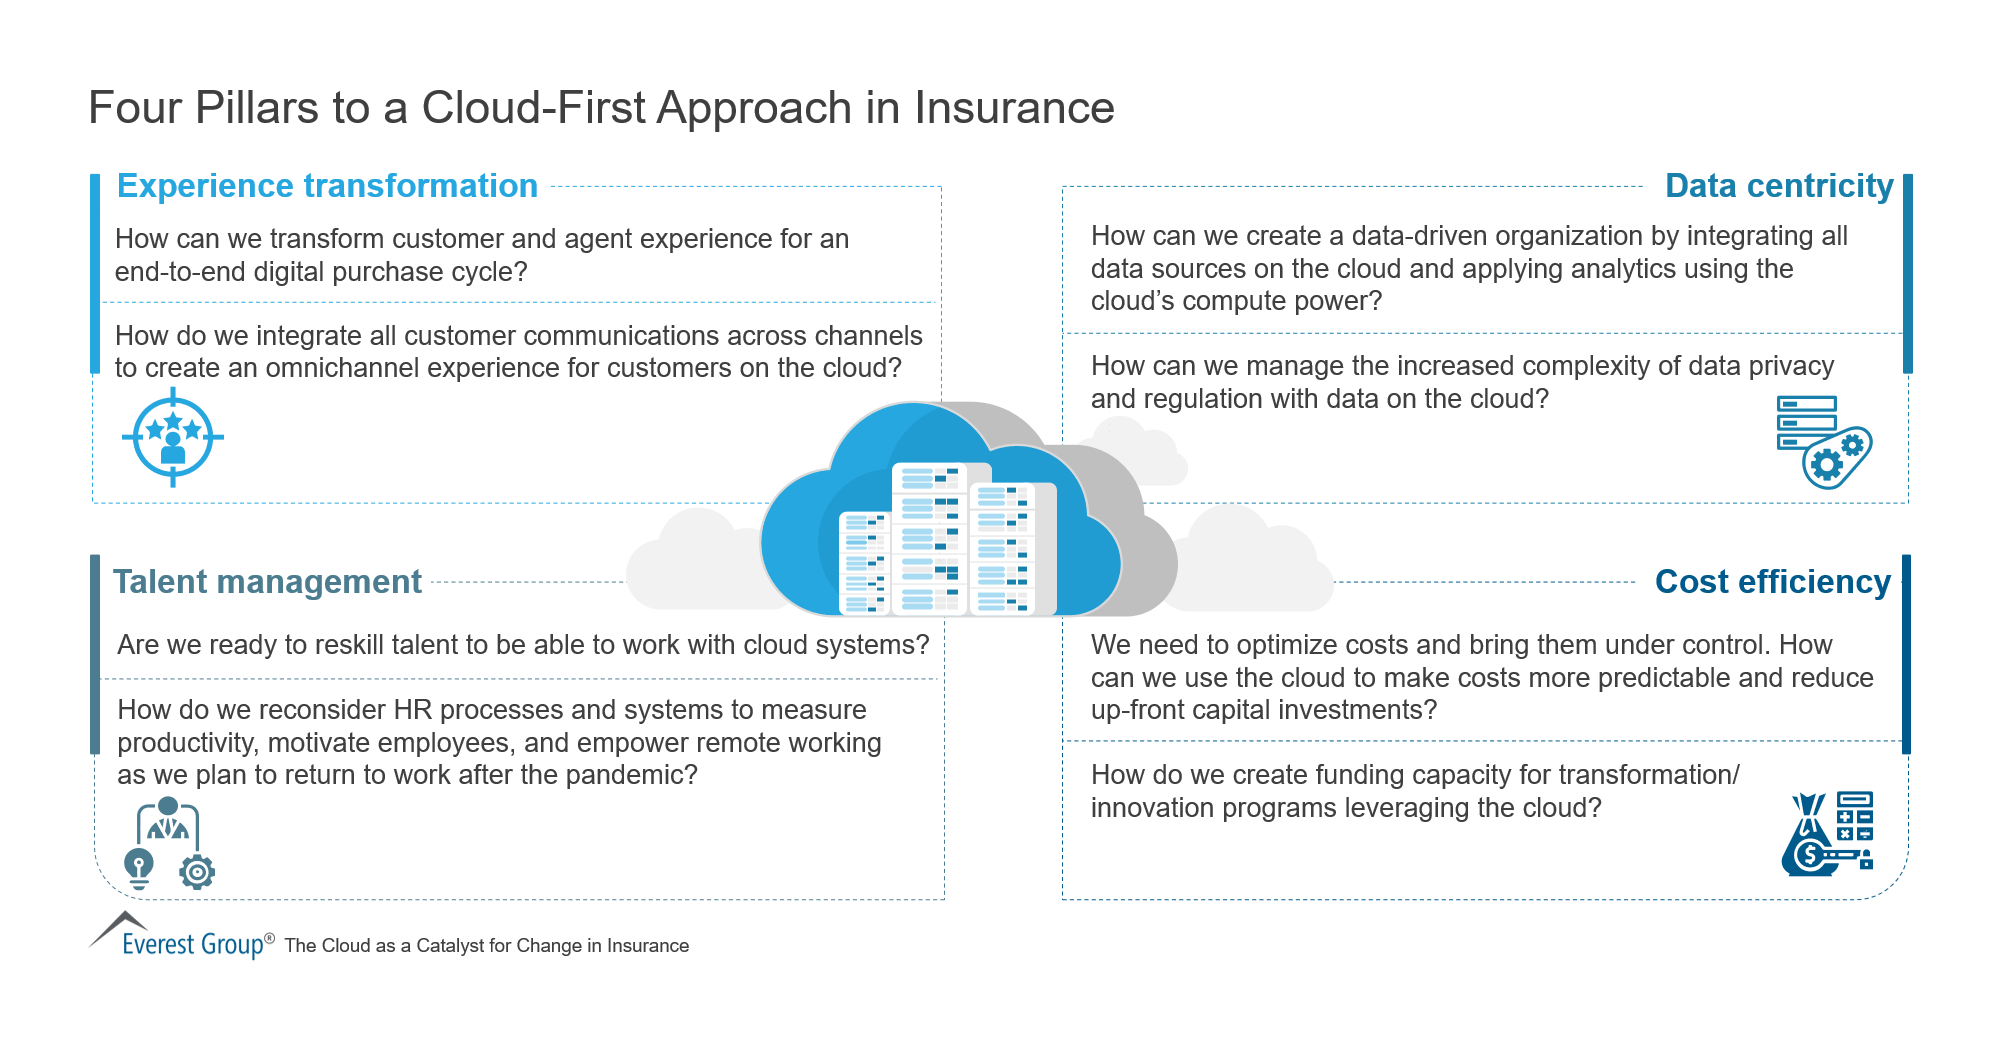 Four Pillars to a Cloud-First Approach in Insurance